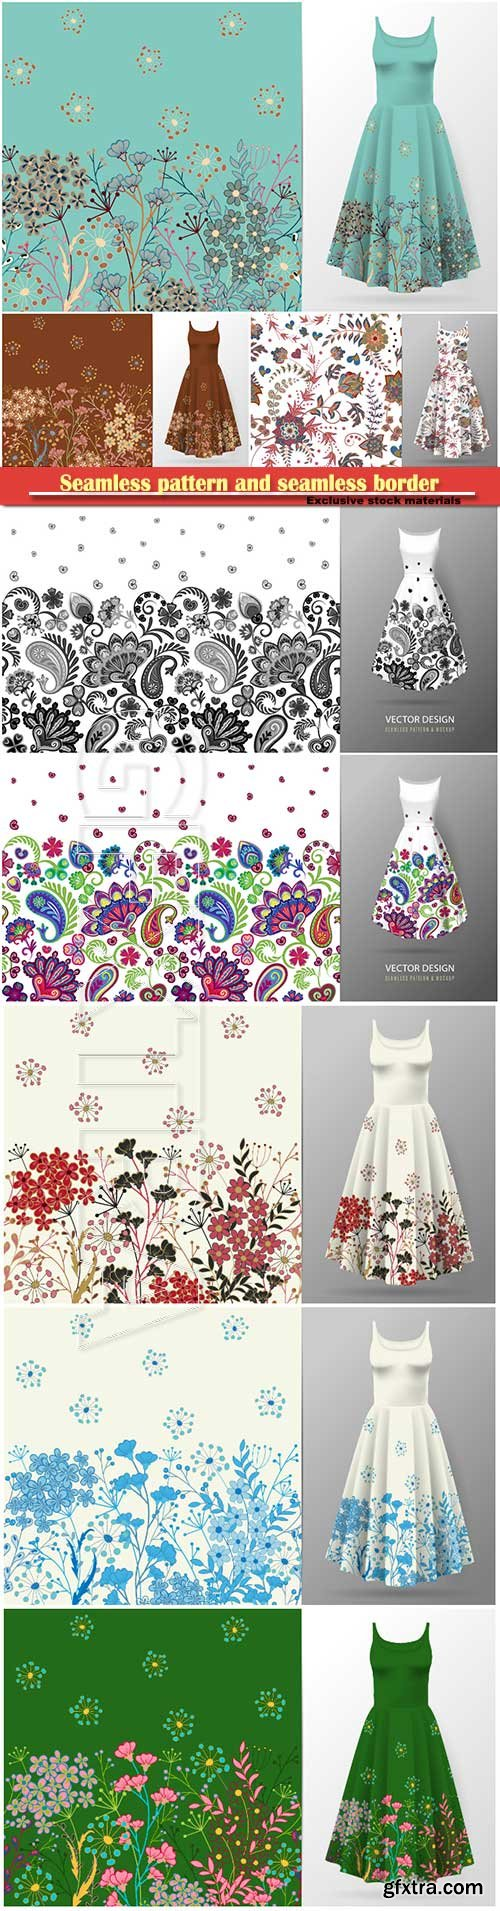 Seamless pattern and seamless border for dress mock up vector illustration